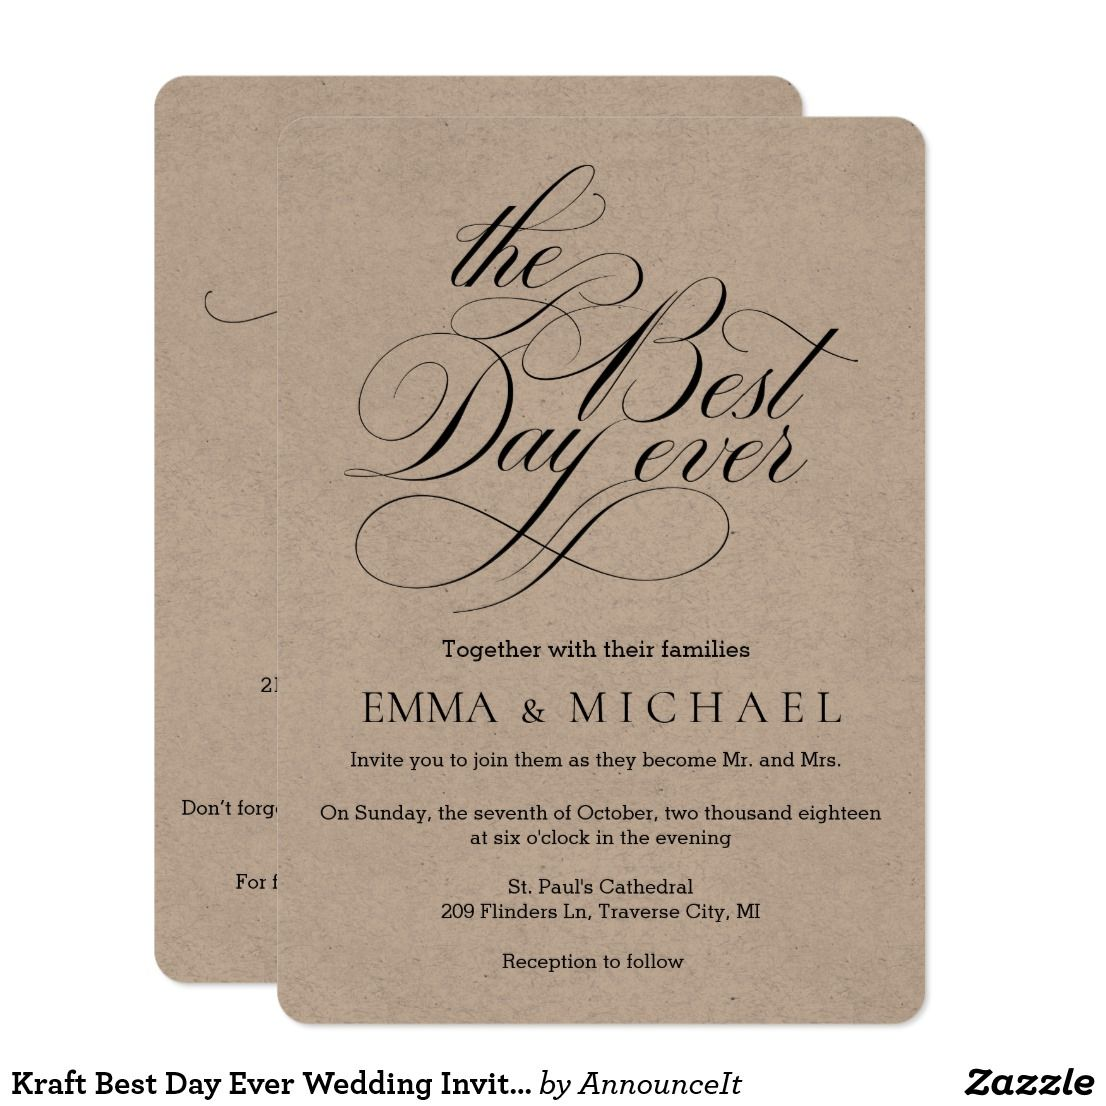 Kraft Best Day Ever Wedding Invitations